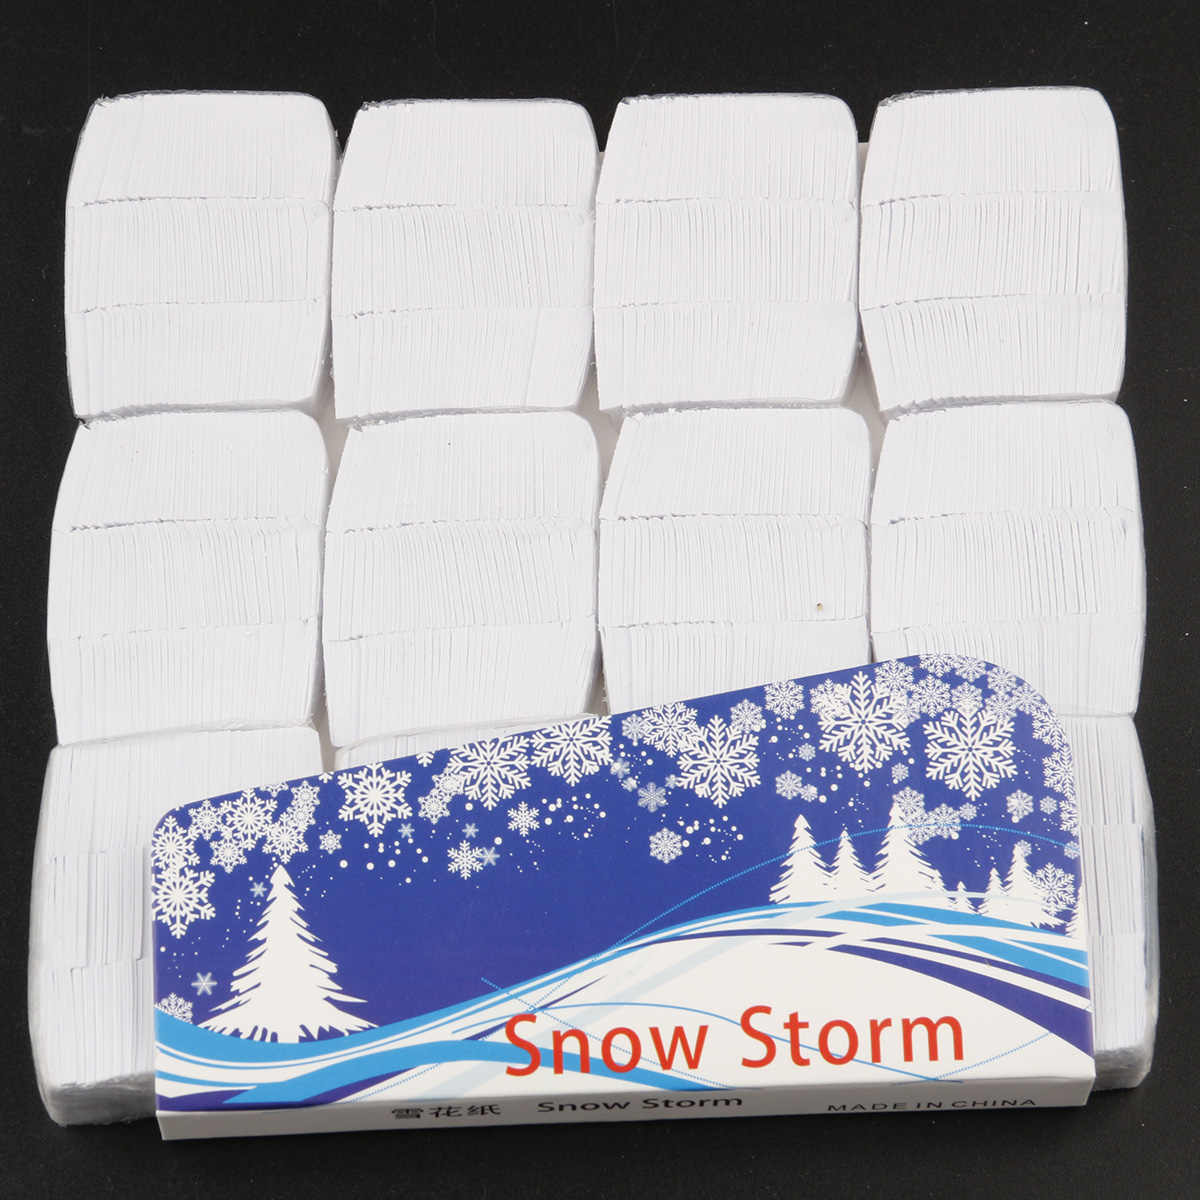 Snow Storm Magic Trick Toy 12pcs bag White Finger Snow Paper Snowflakes Props Toys White SnowStorm Magician for Children Adult